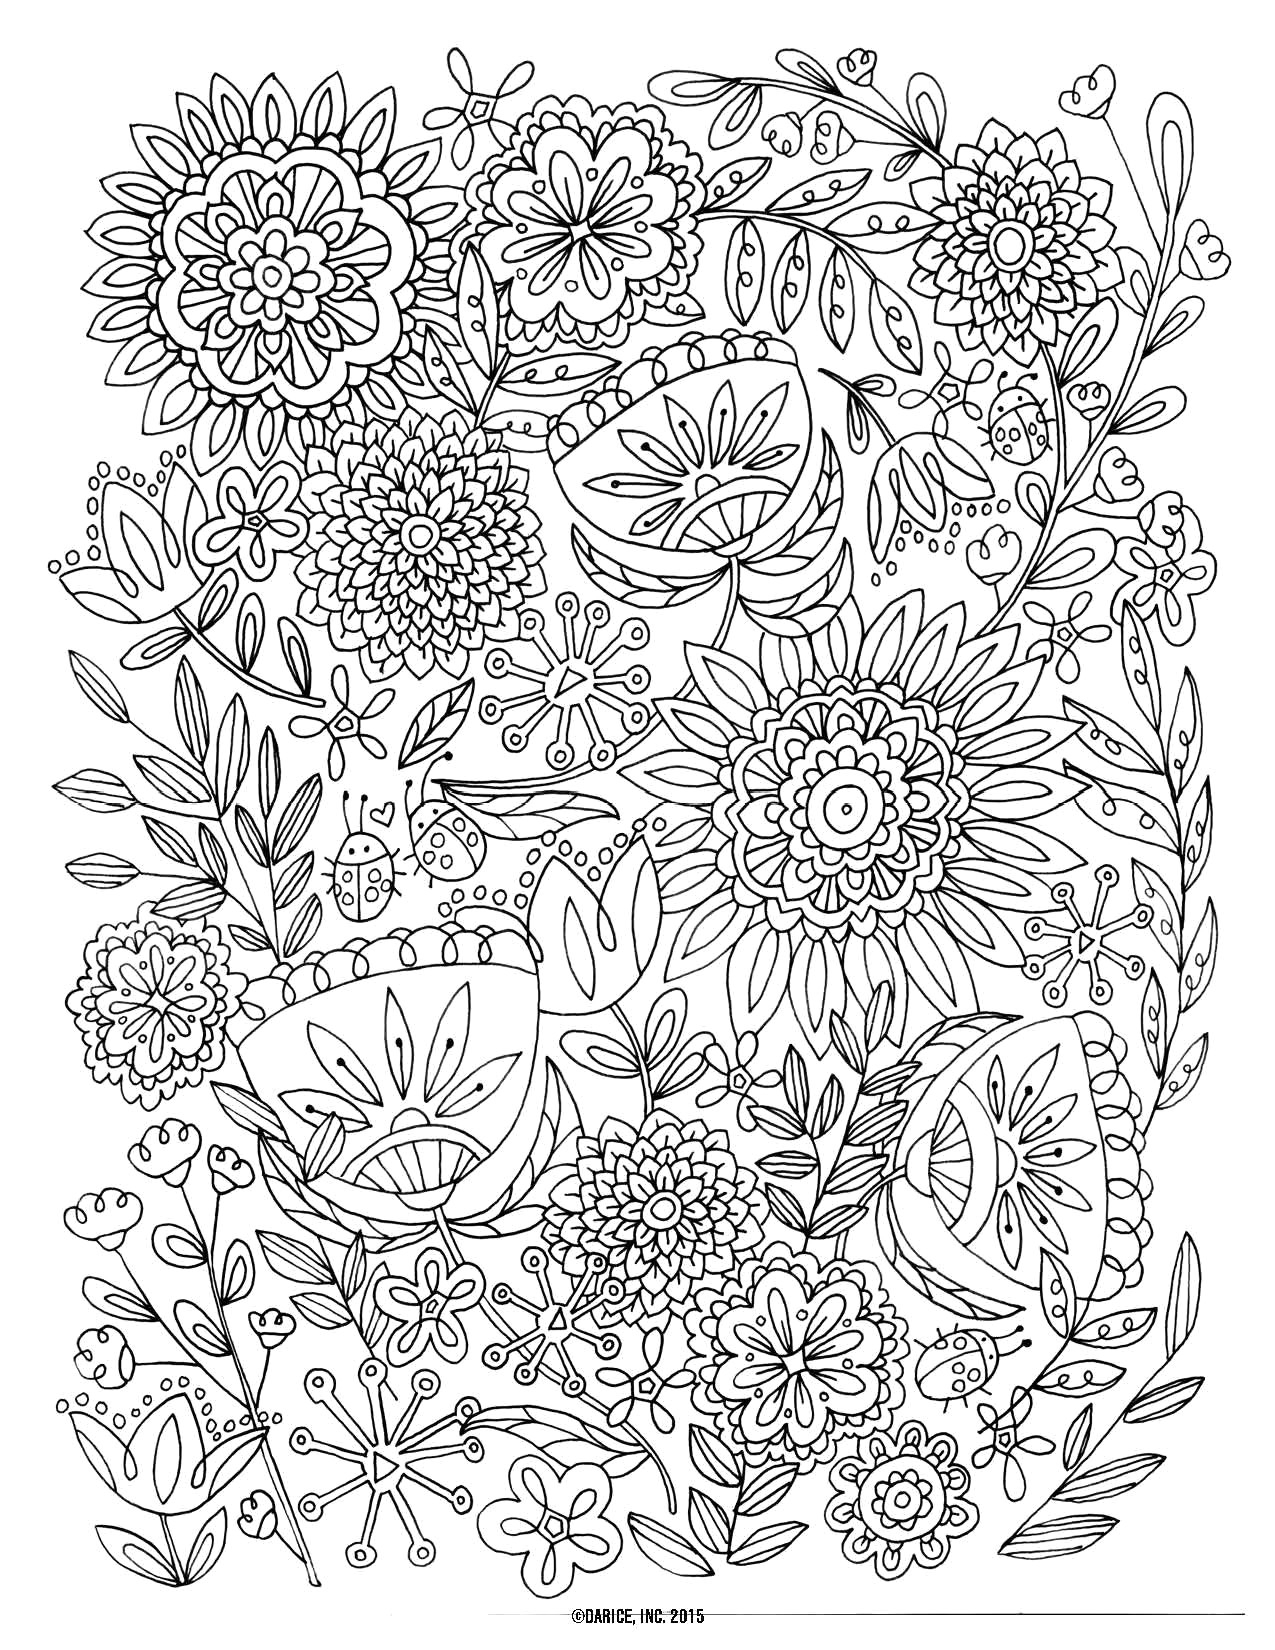 Free Printable Flower Coloring Pages Free Printable Flower Coloring Pages For Adults Thanhhoacar